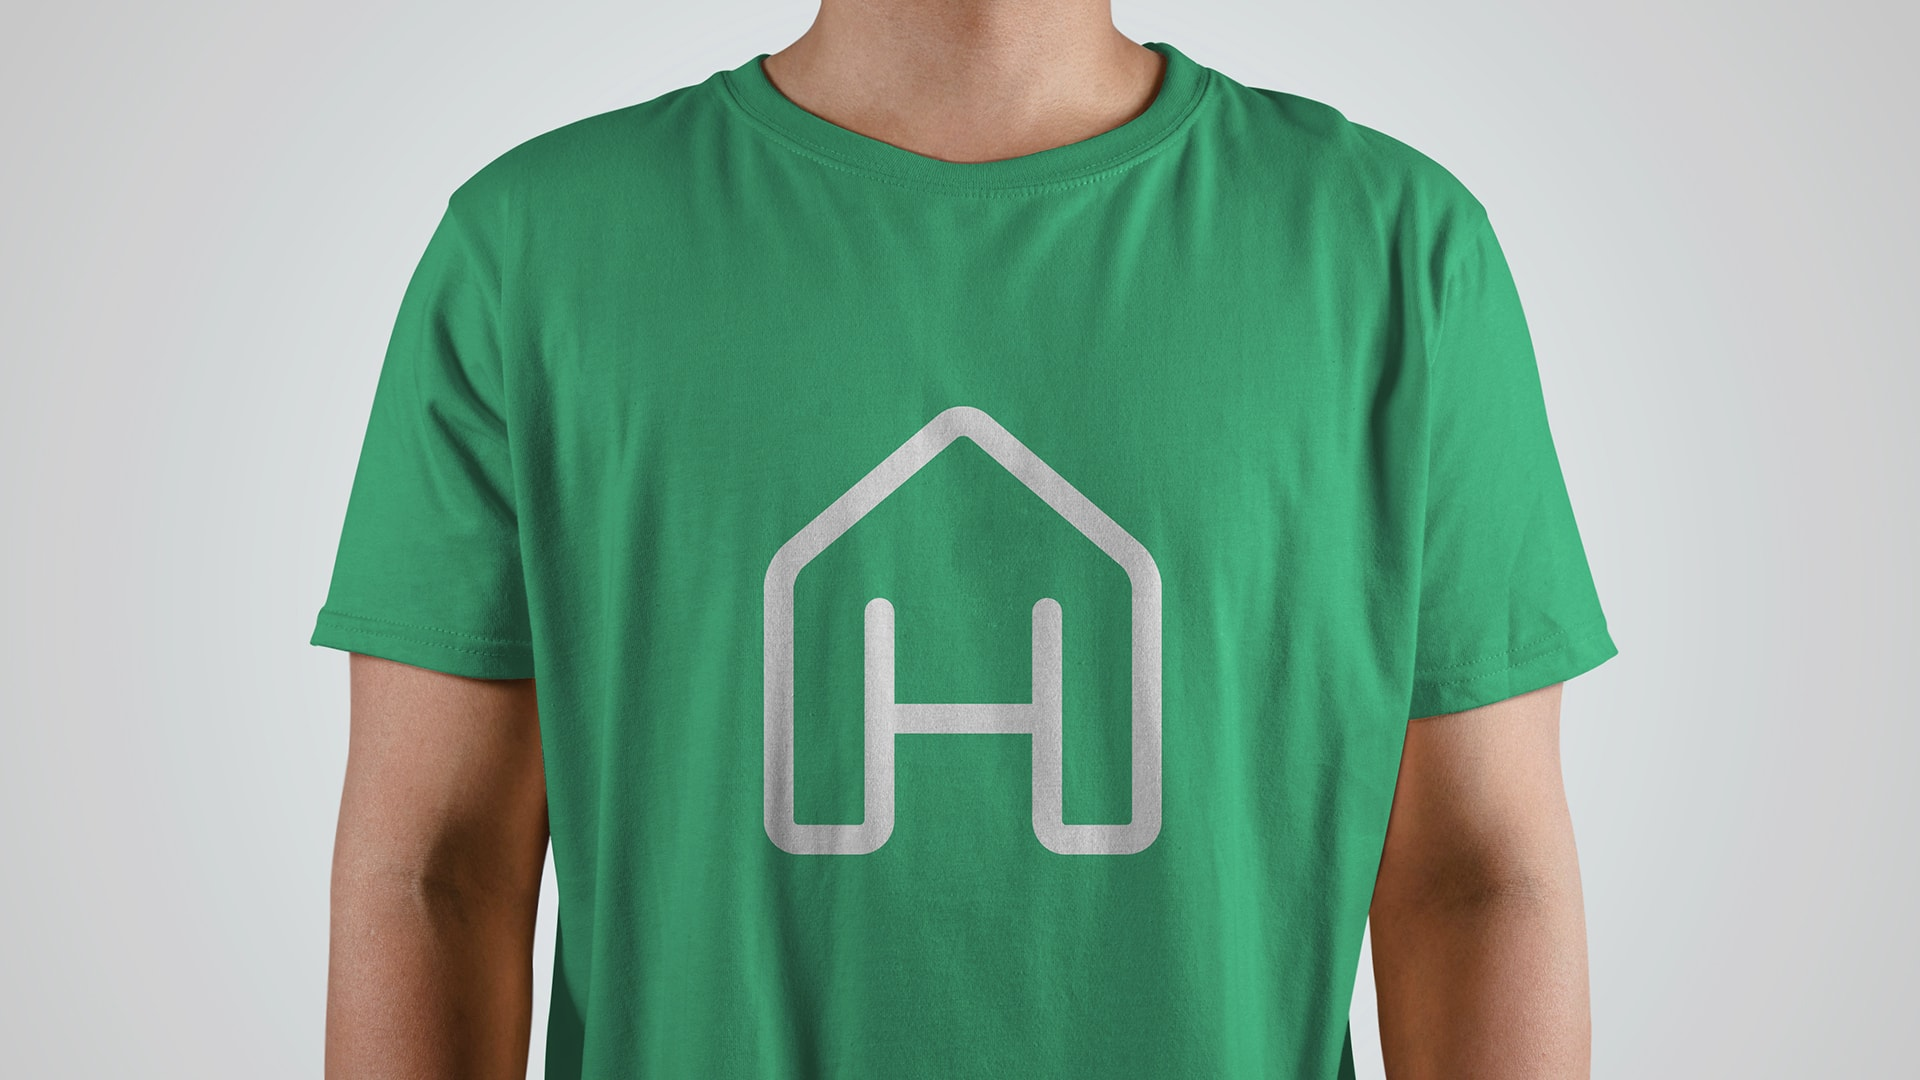 homey-t-shirt-design